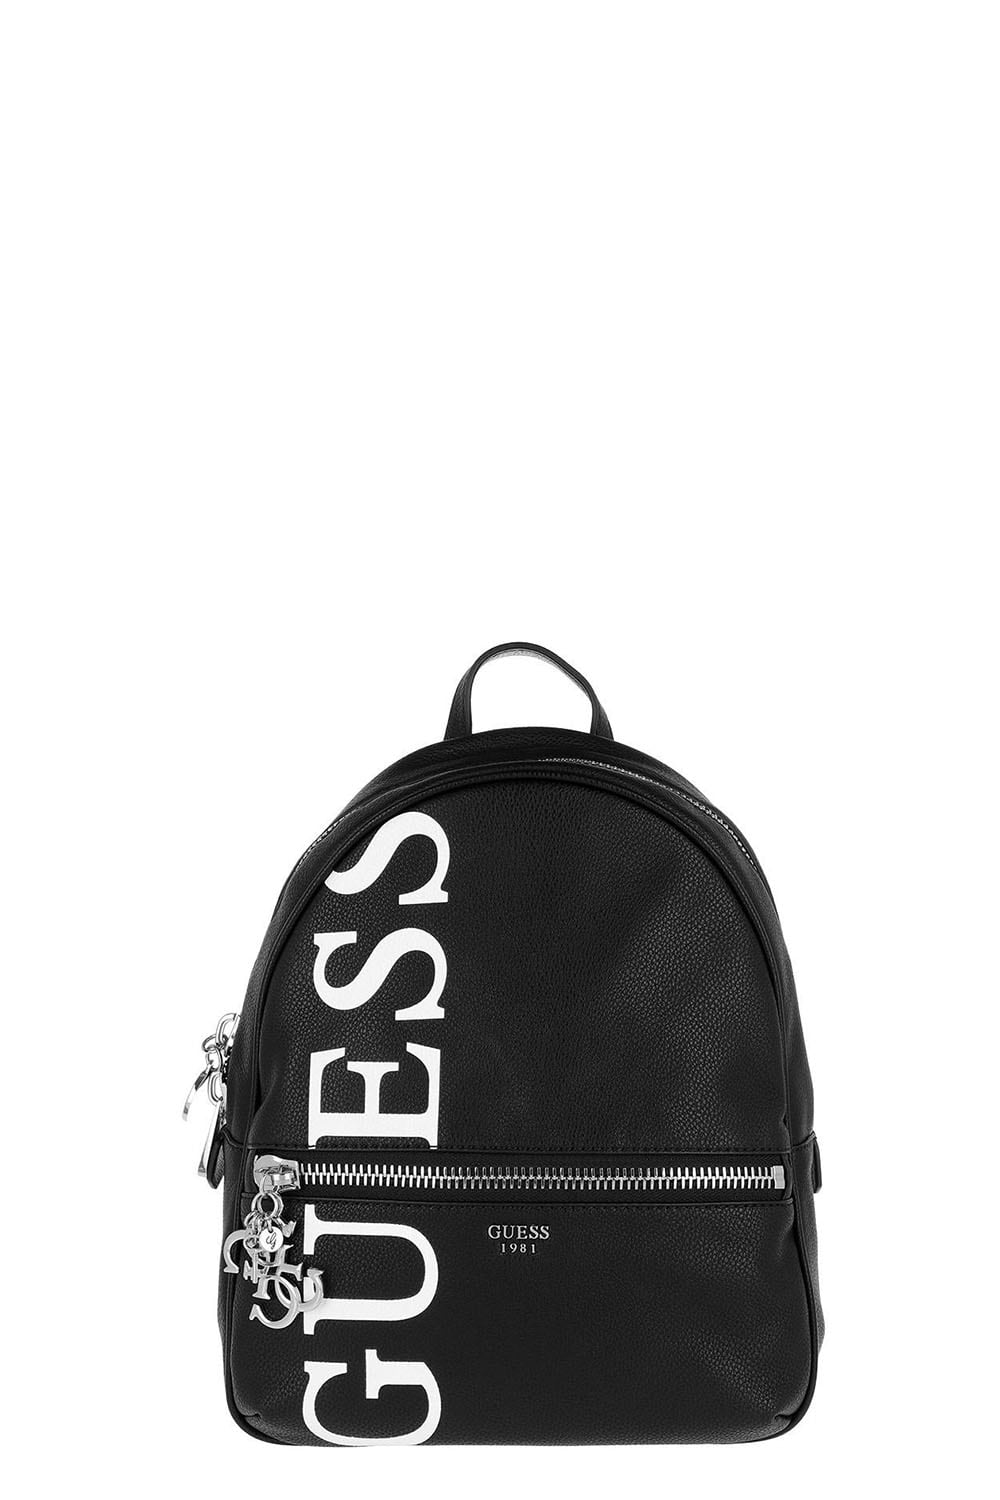 Backpack Guess 018253 91a7575d860